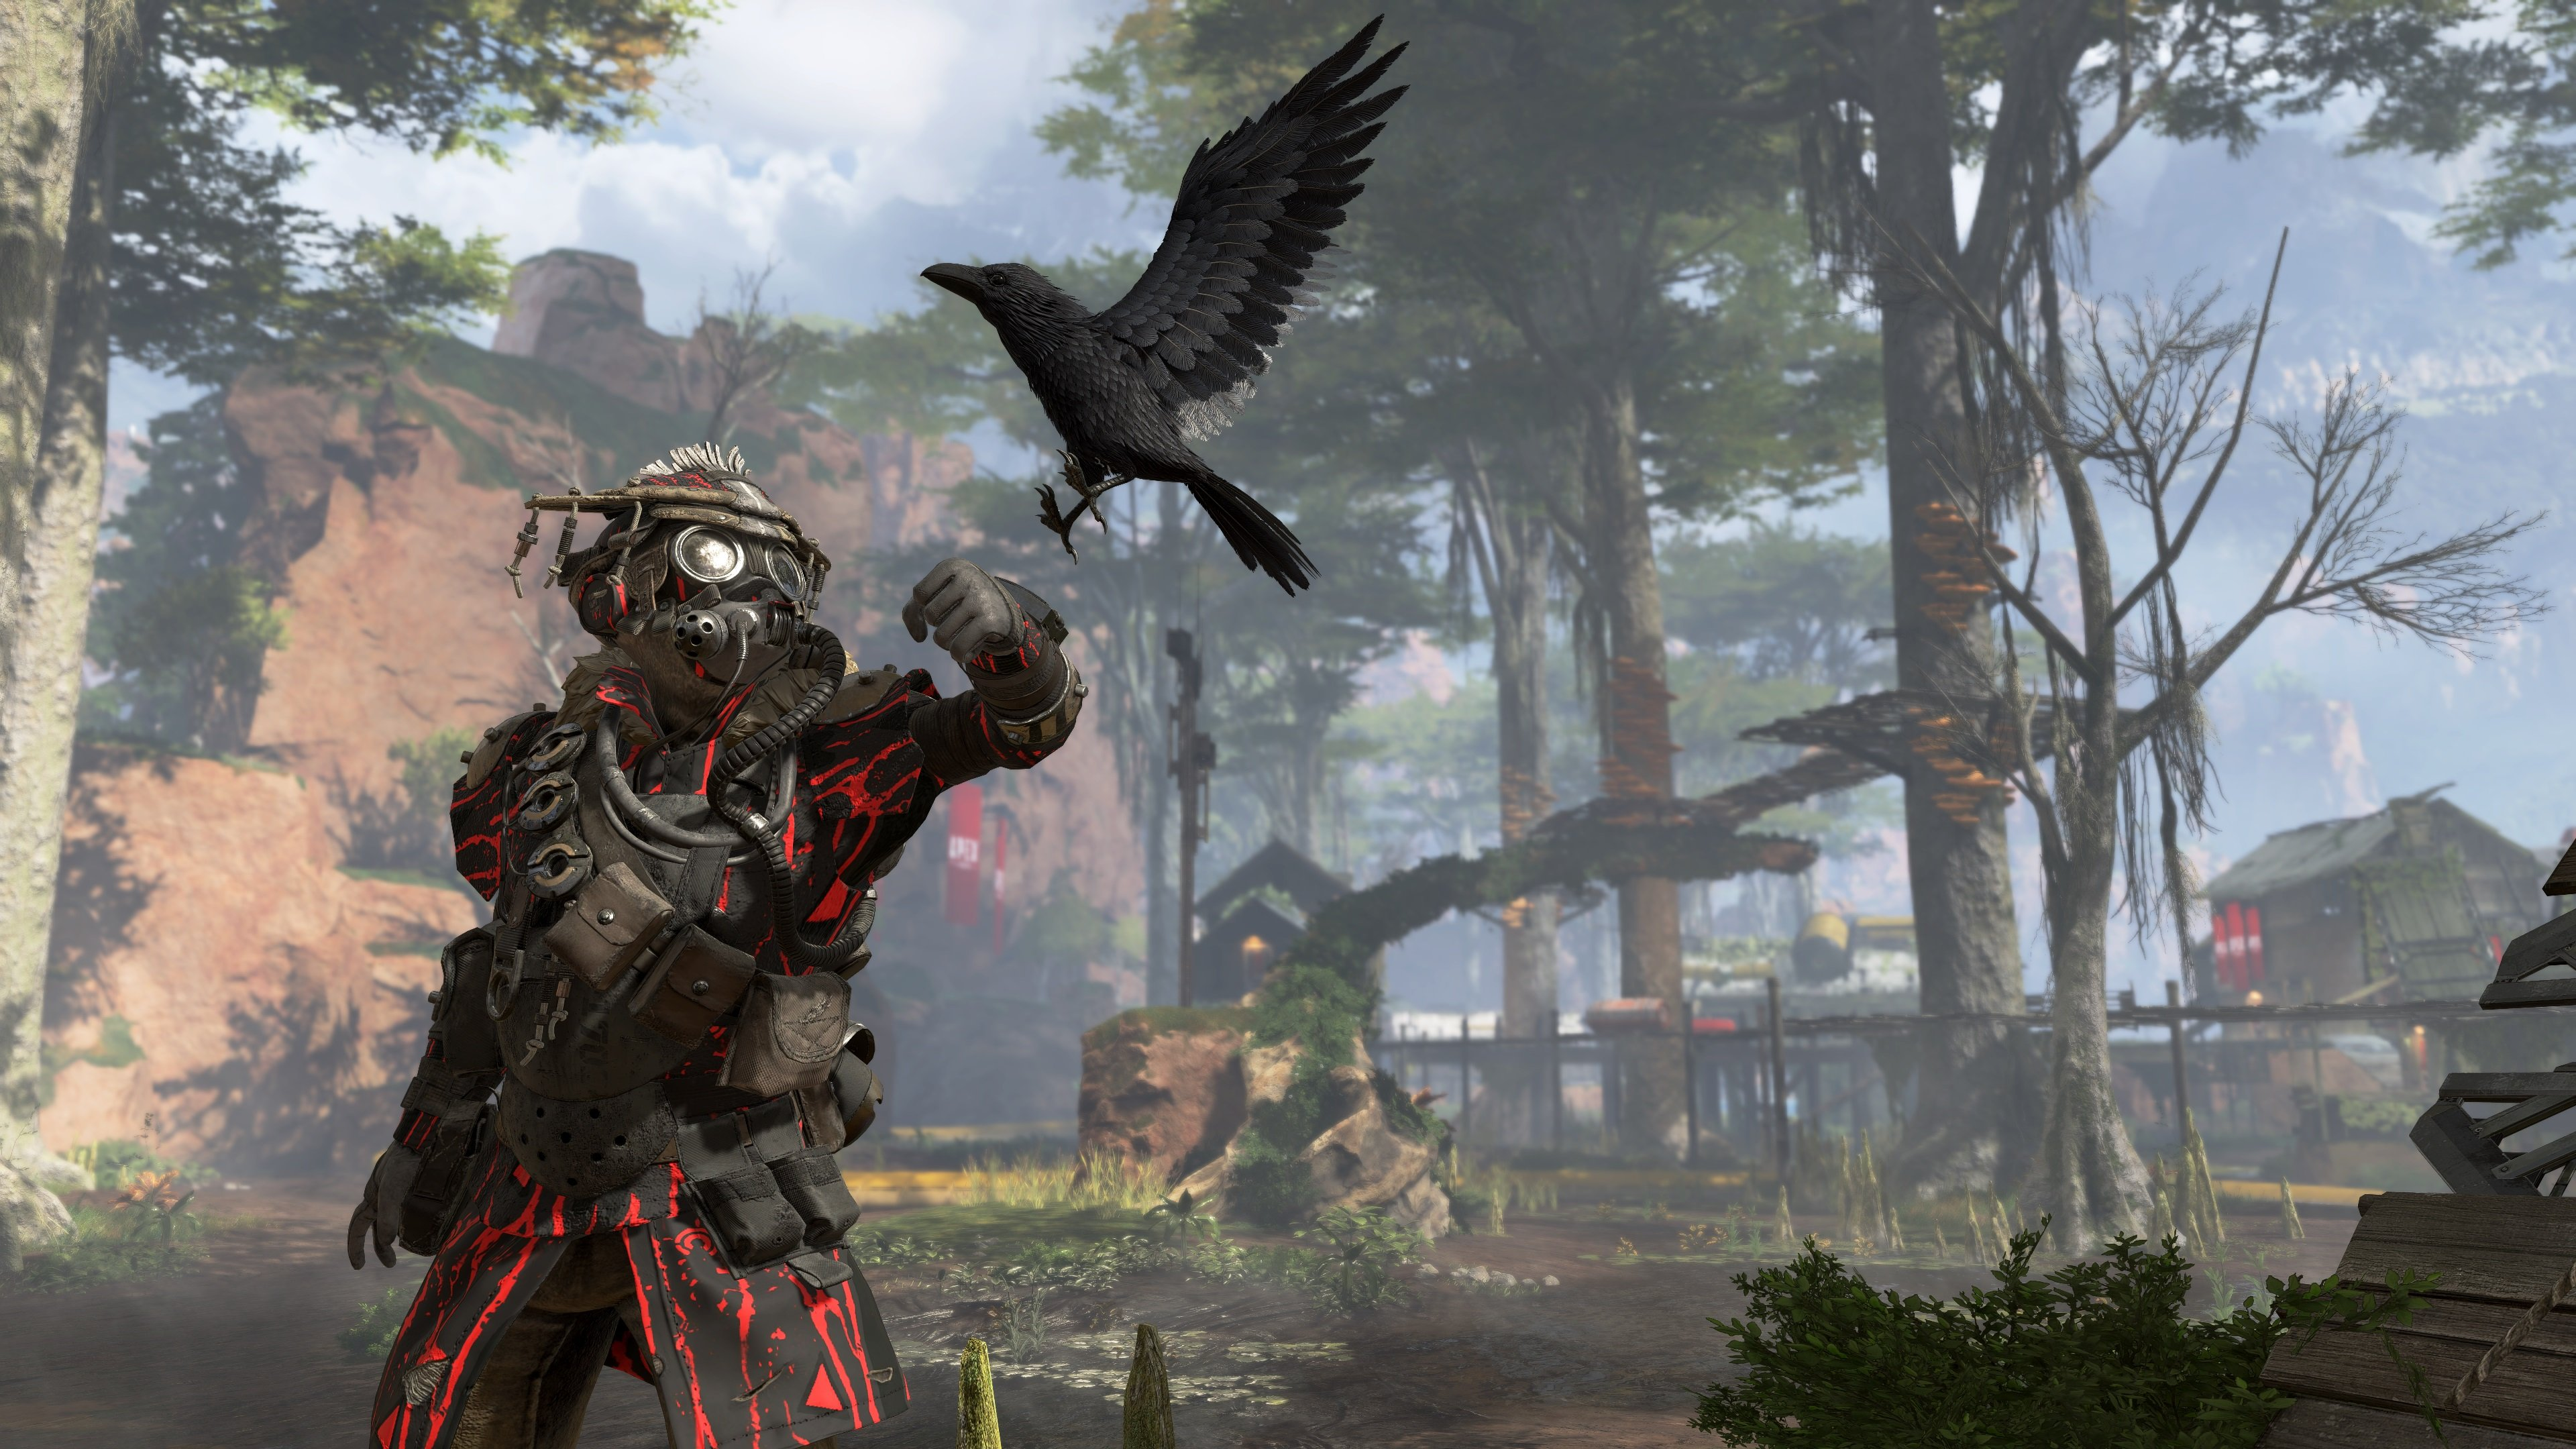 Twitch Is Gifting Exclusive Apex Legends Loot For Amazon Prime Day